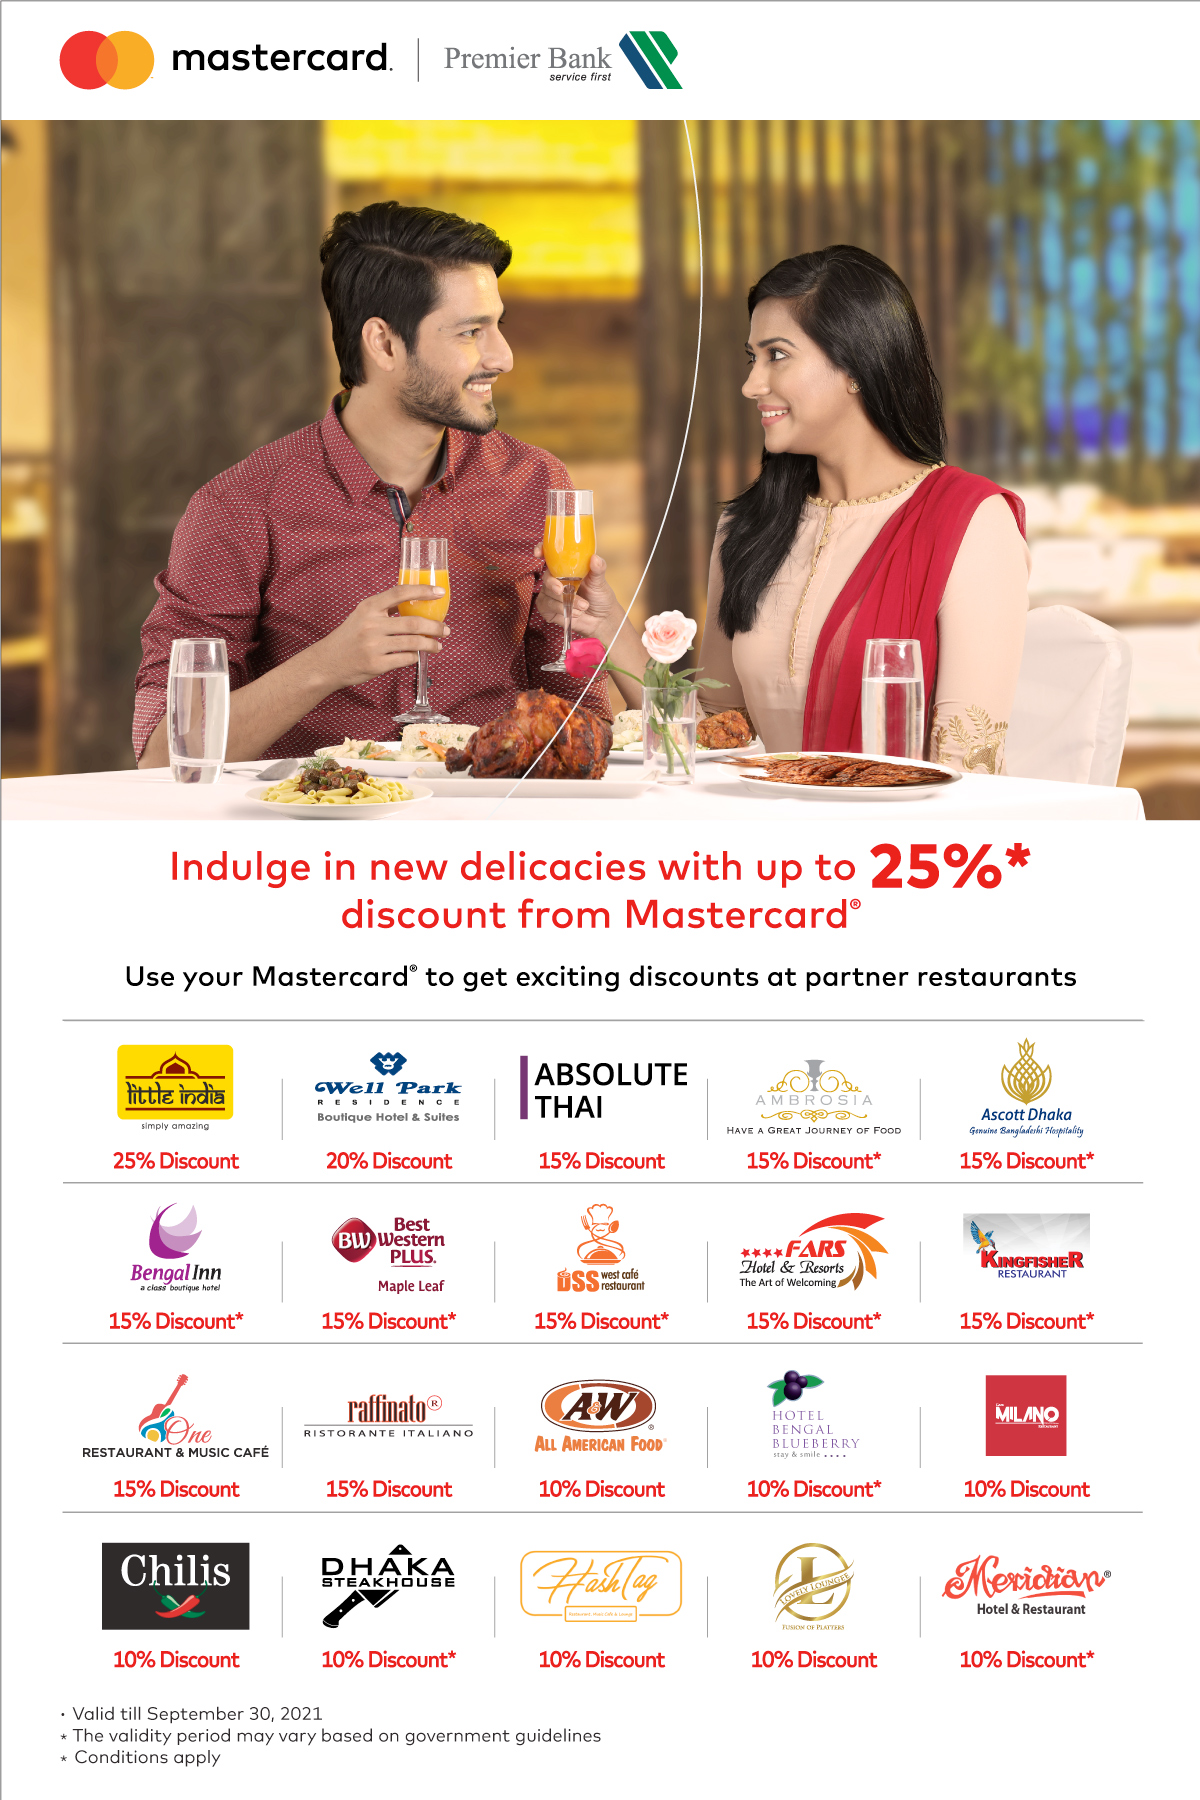 Indulge in New Delicacies Discounts by Premier Bank Mastercard